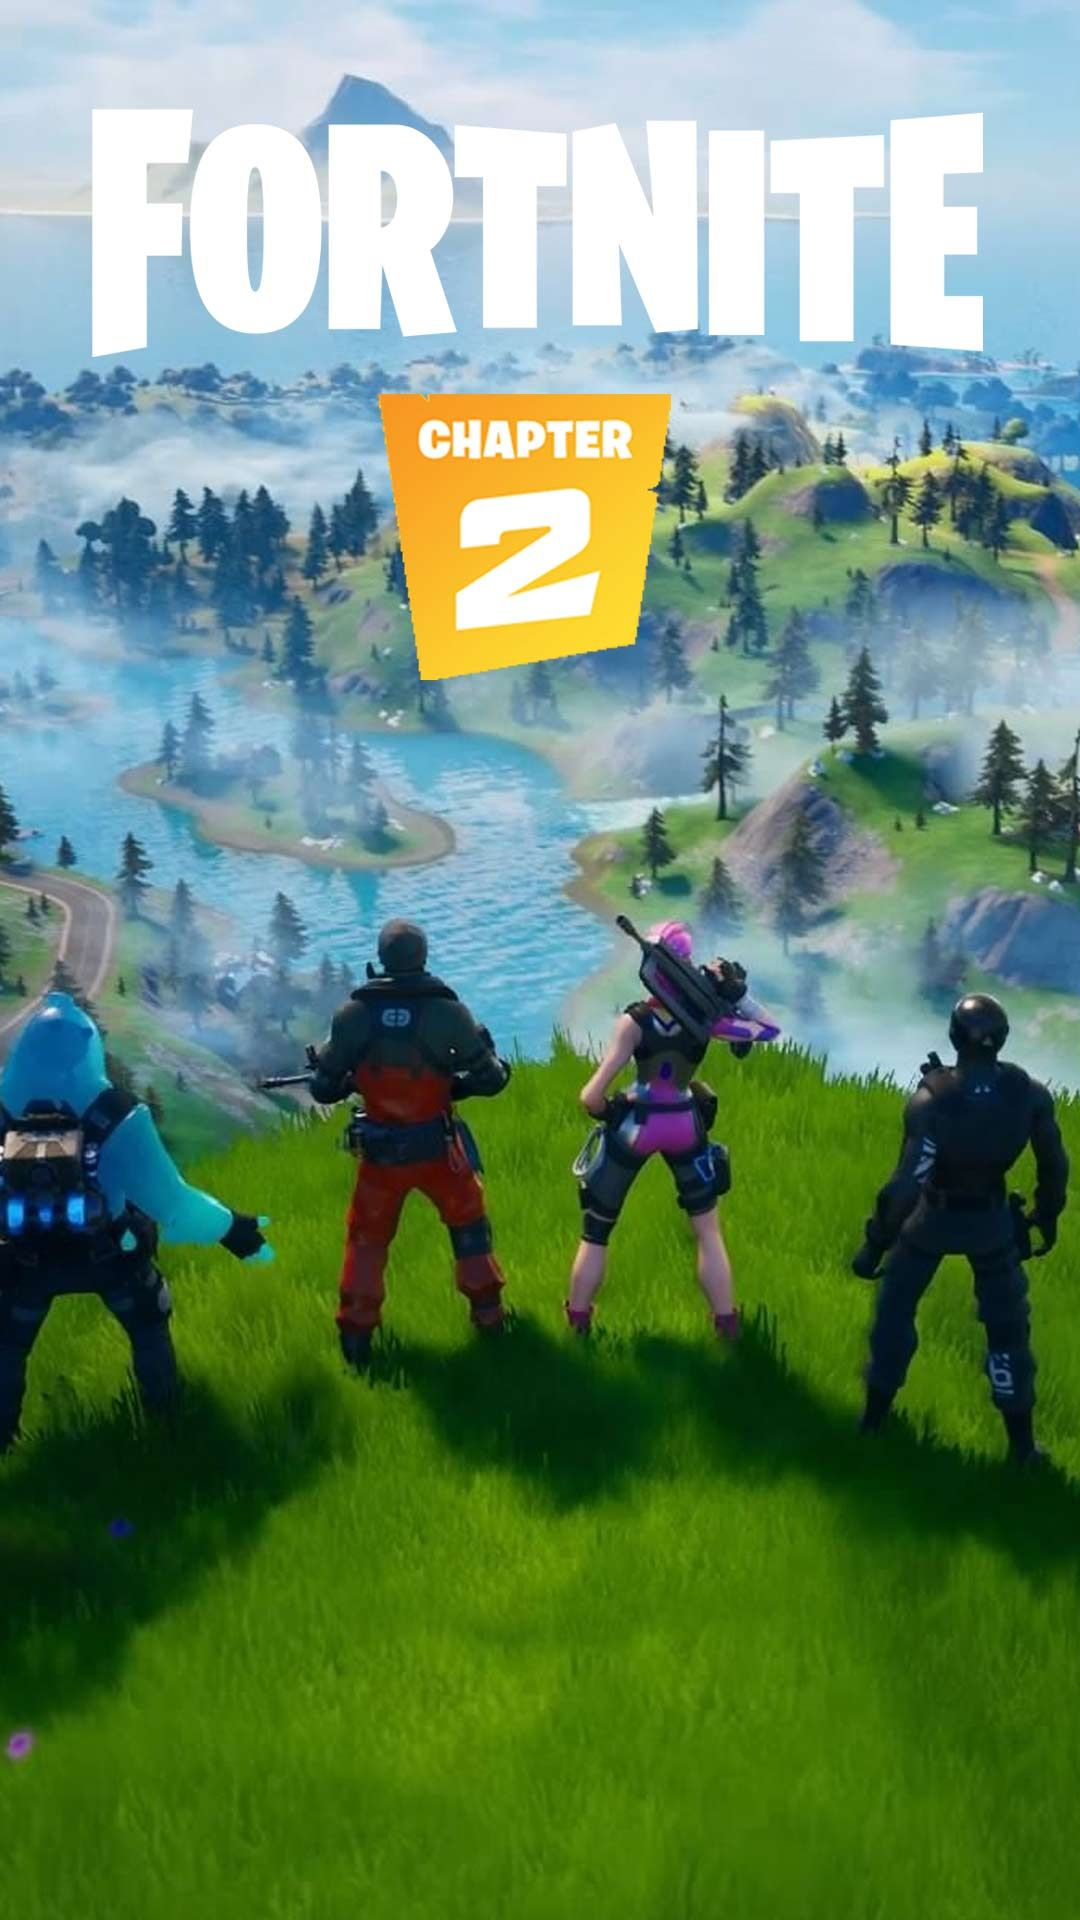 Fortnite Chapter 2 Season 2 Wallpaper Hd Phone Backgrounds For Iphone Android Lock Screen Art In 2020 Phone Wallpaper Hd Phone Backgrounds Iphone Background